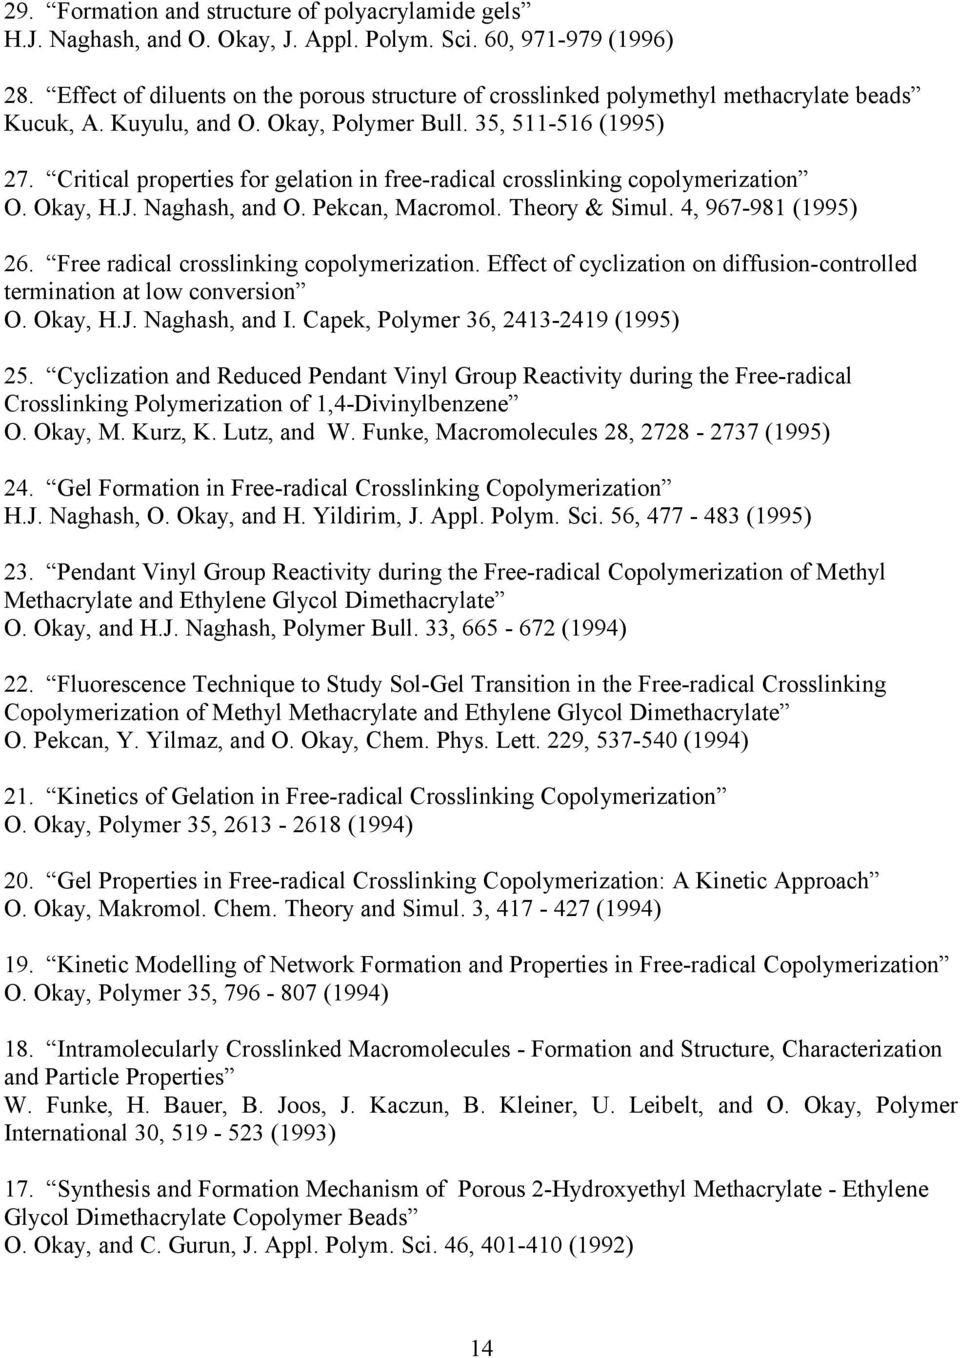 Critical properties for gelation in free-radical crosslinking copolymerization O. Okay, H.J. Naghash, and O. Pekcan, Macromol. Theory & Simul. 4, 967-981 (1995) 26.